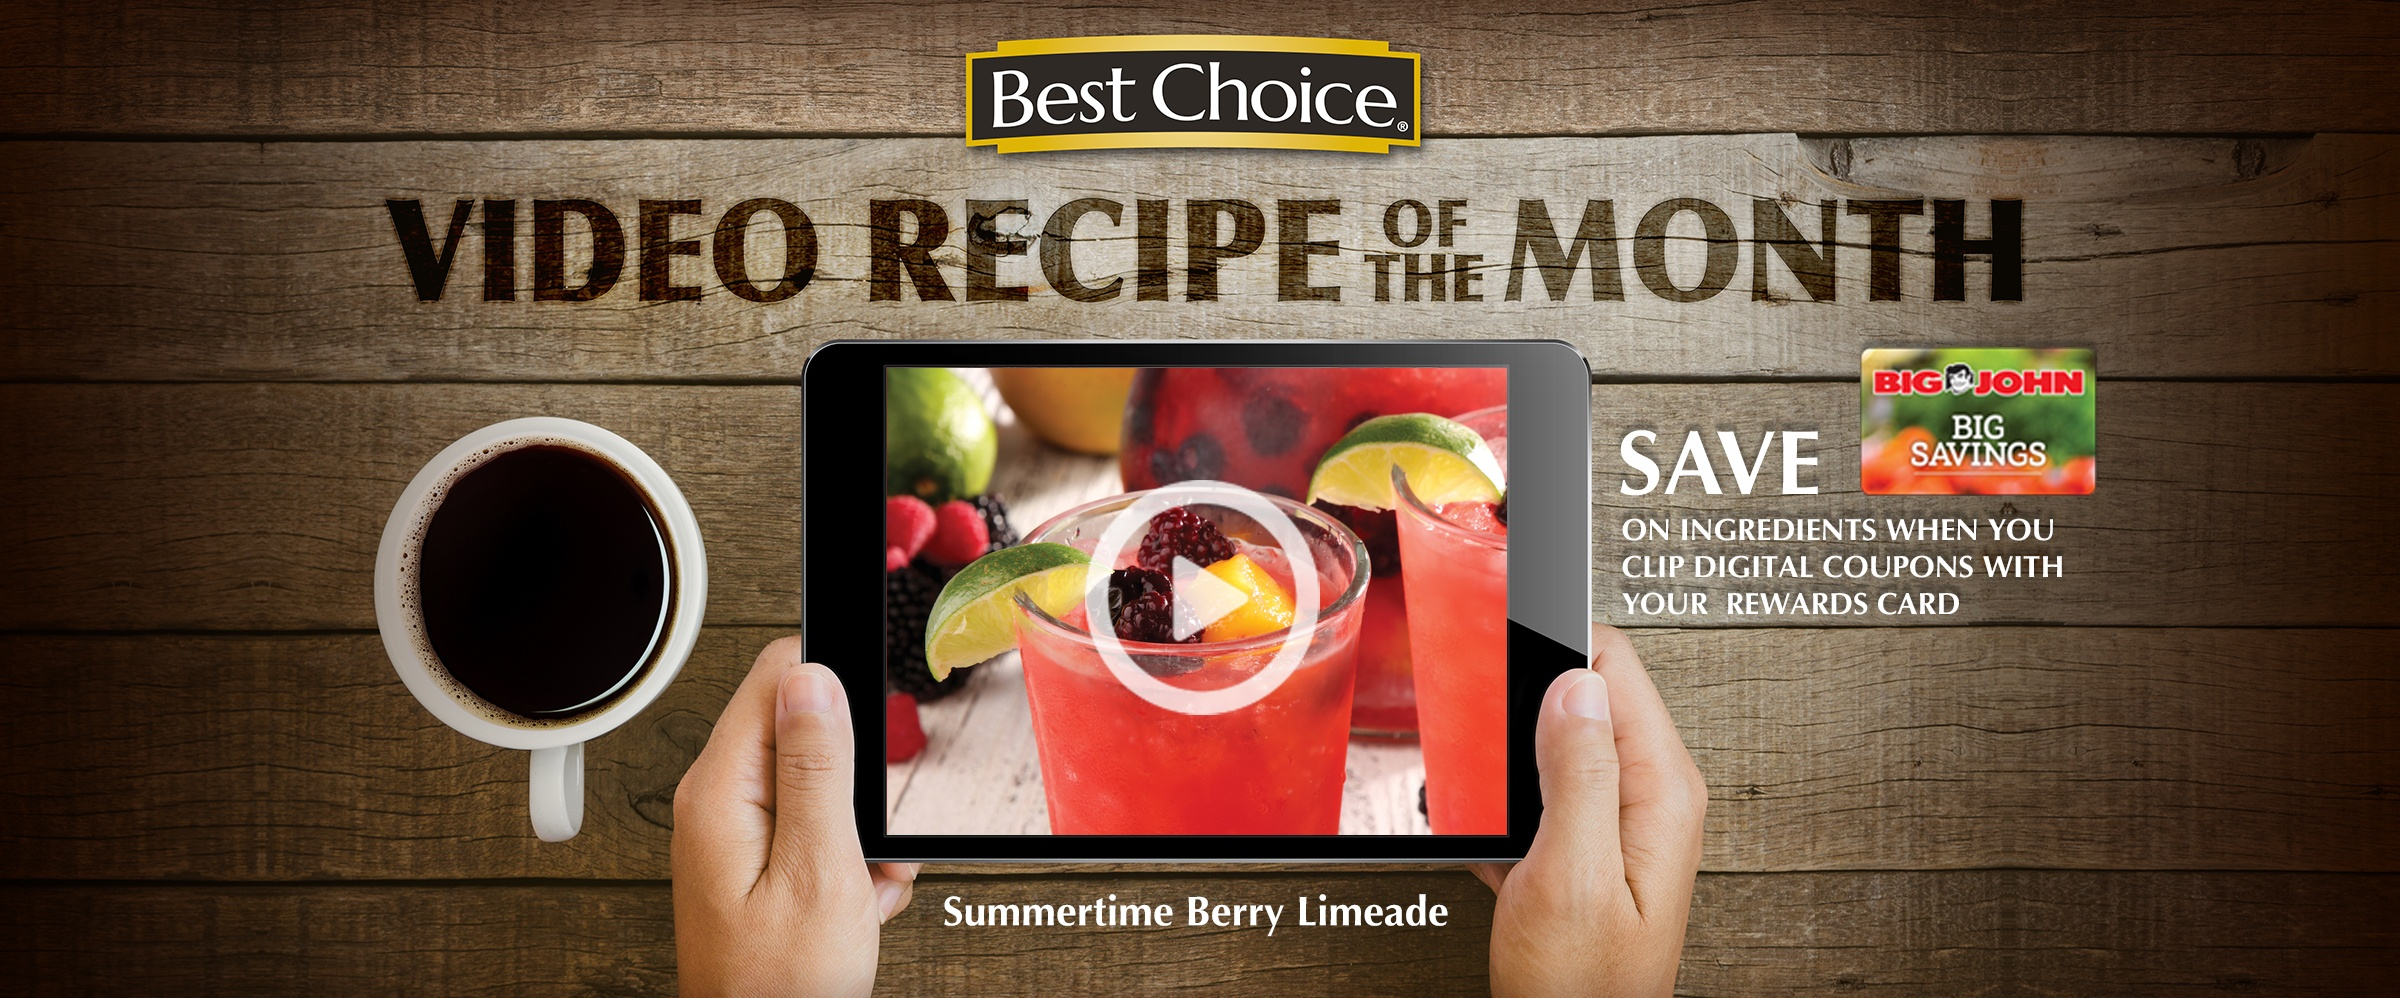 Best Choice Recipe Video: Summertime Berry Limeade